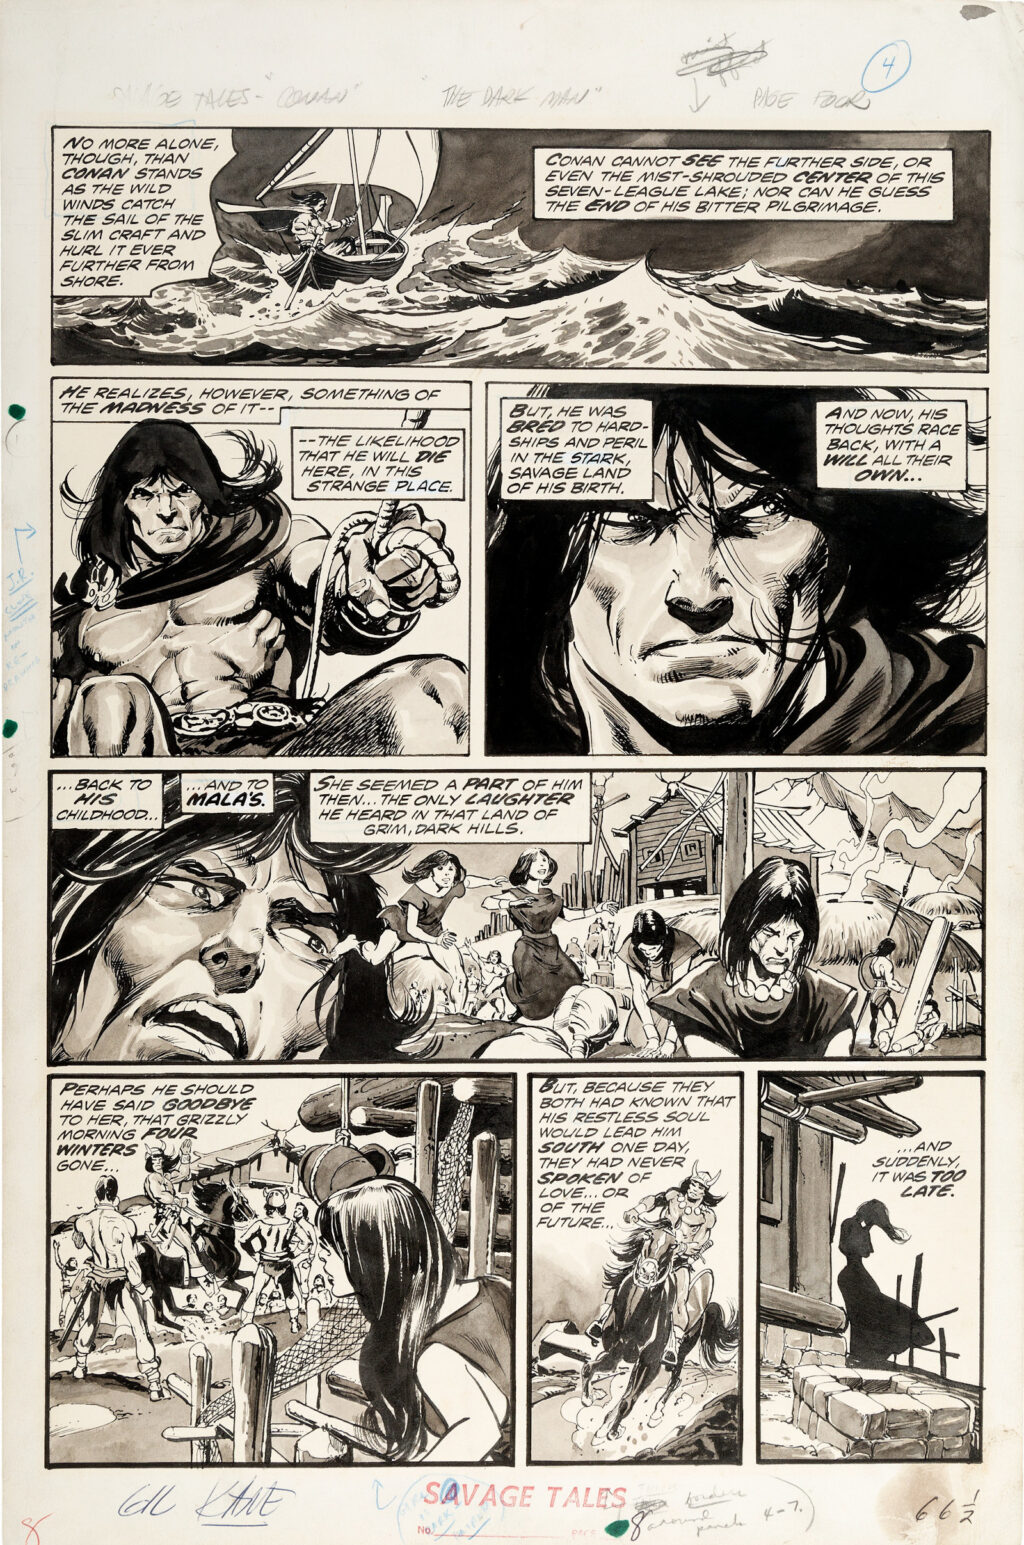 Savage Tales issue 4 page 4 by Gil Kane and Neal Adams